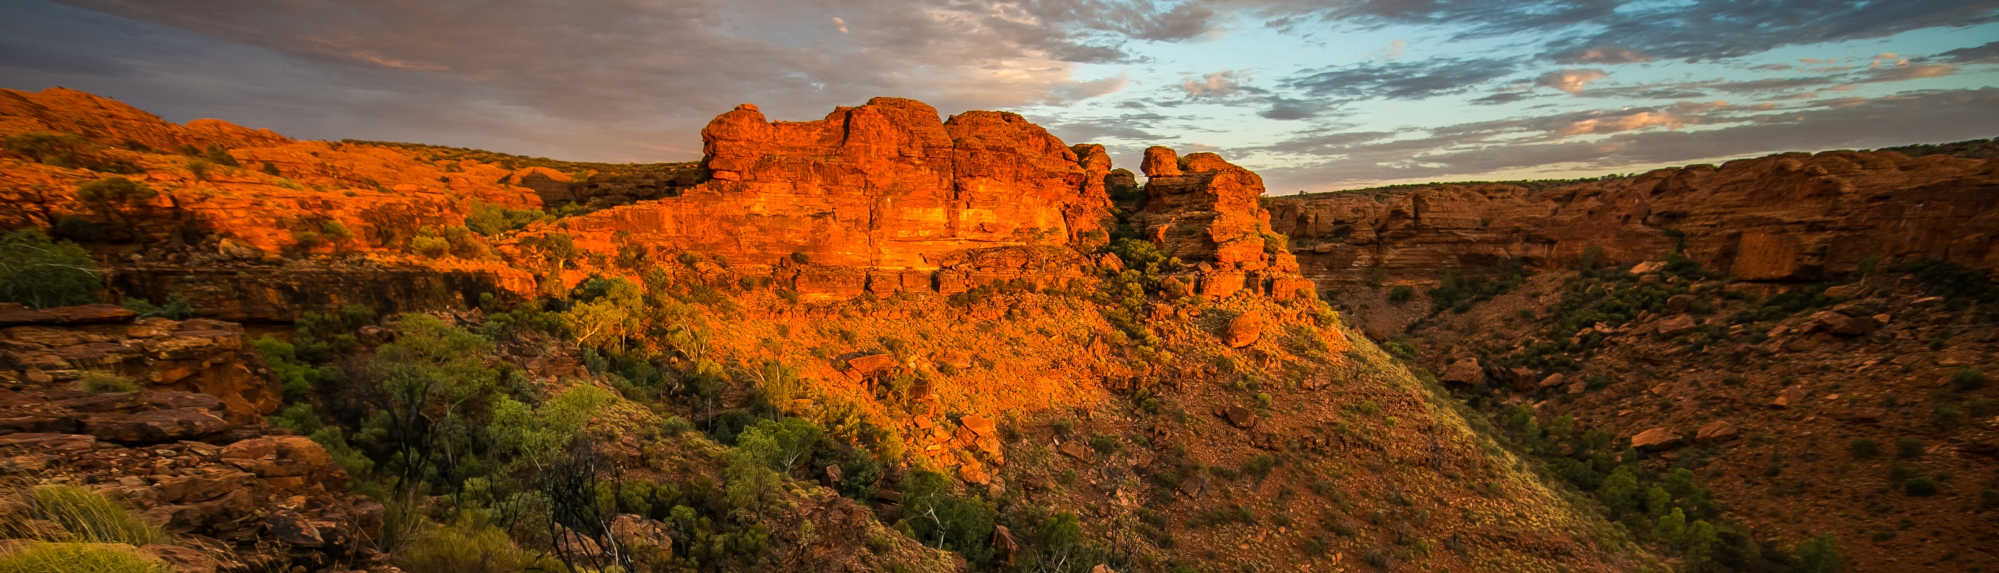 The Must-See Sights in the Aussie Outback